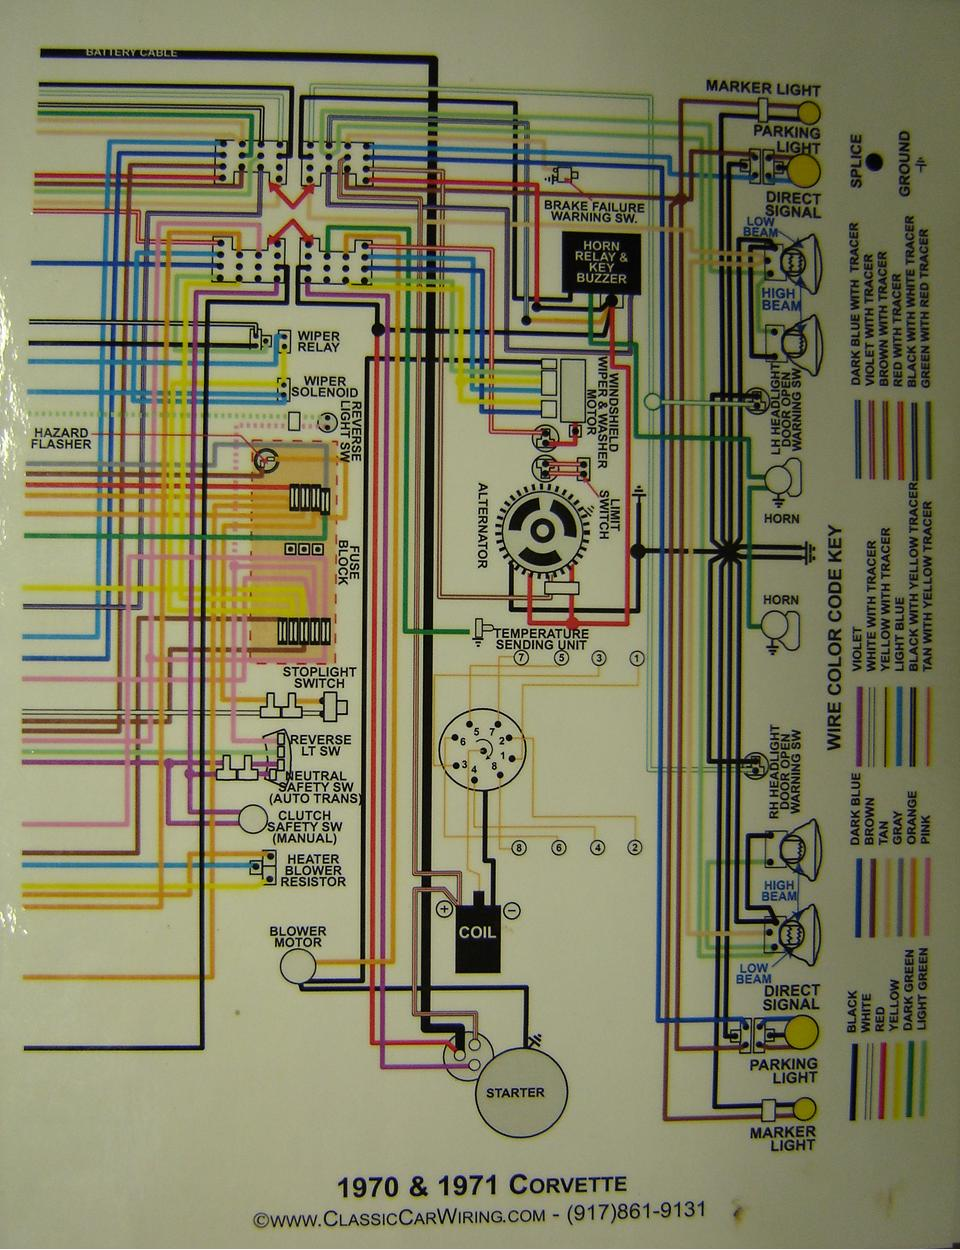 1970 71 corvette color wiring diagram B 1970 chevelle wiring diagram efcaviation com 1972 chevelle wiring diagram pdf at webbmarketing.co